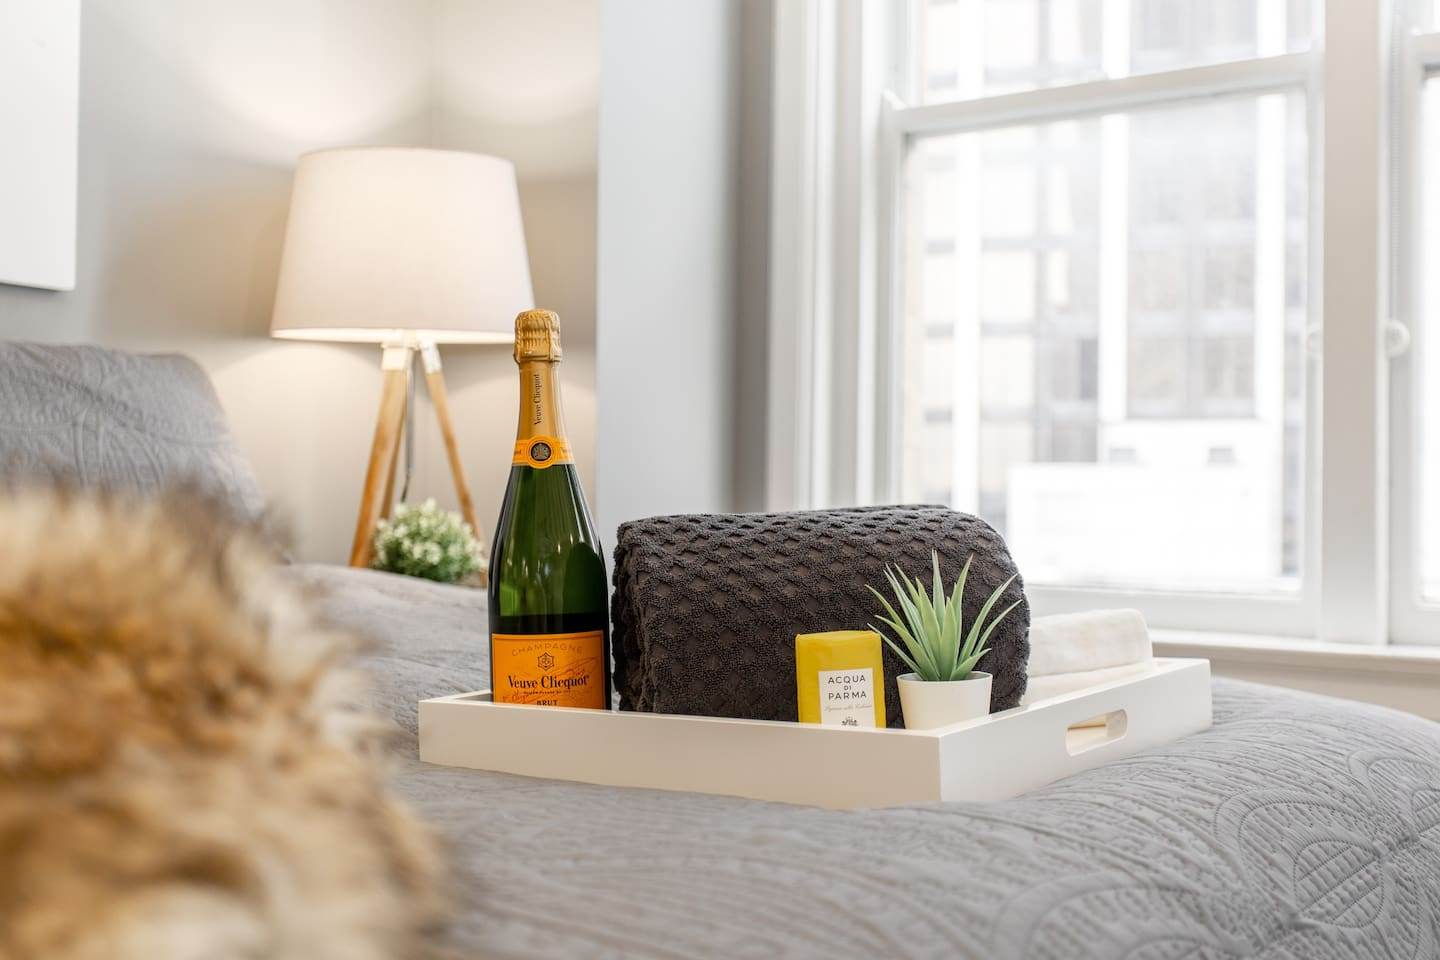 Veuve can be organized for guests upon request